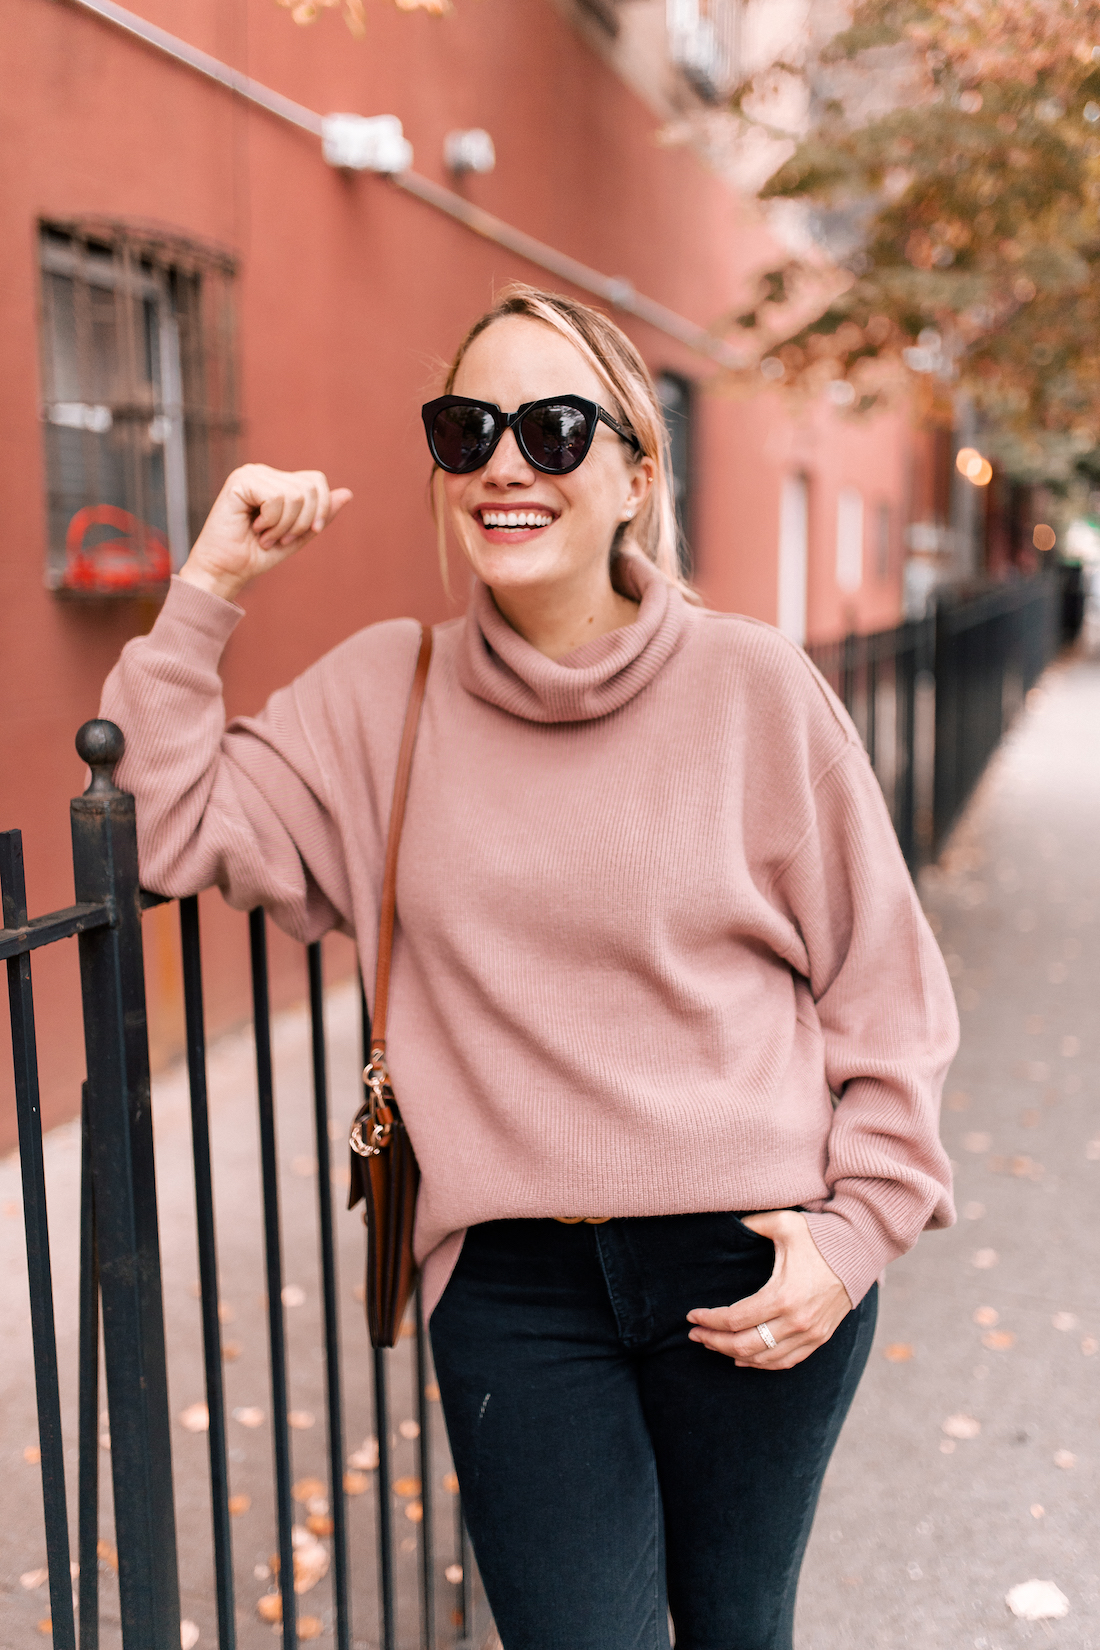 Free People Softly Structured Tunic Sweater // American Eagle Jeans // Gucci Belt  // Karen Walker Sunglasses // Charlotte Tilbury Lipstick